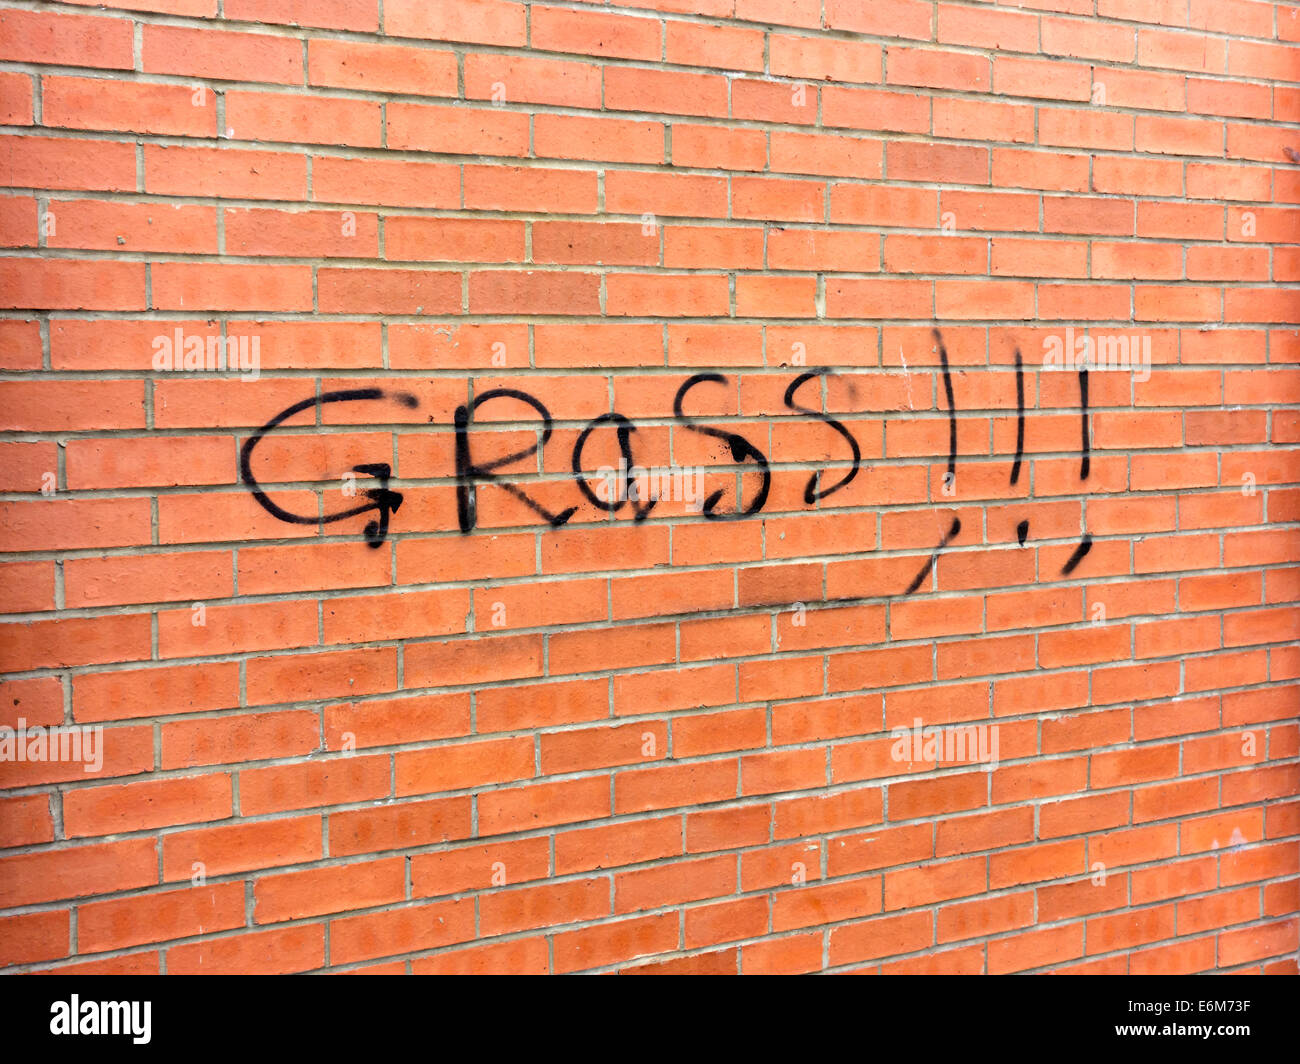 Graffiti on a house reading Grass!!!, meaning that the inhabitant is allegedly a police informer - Stock Image